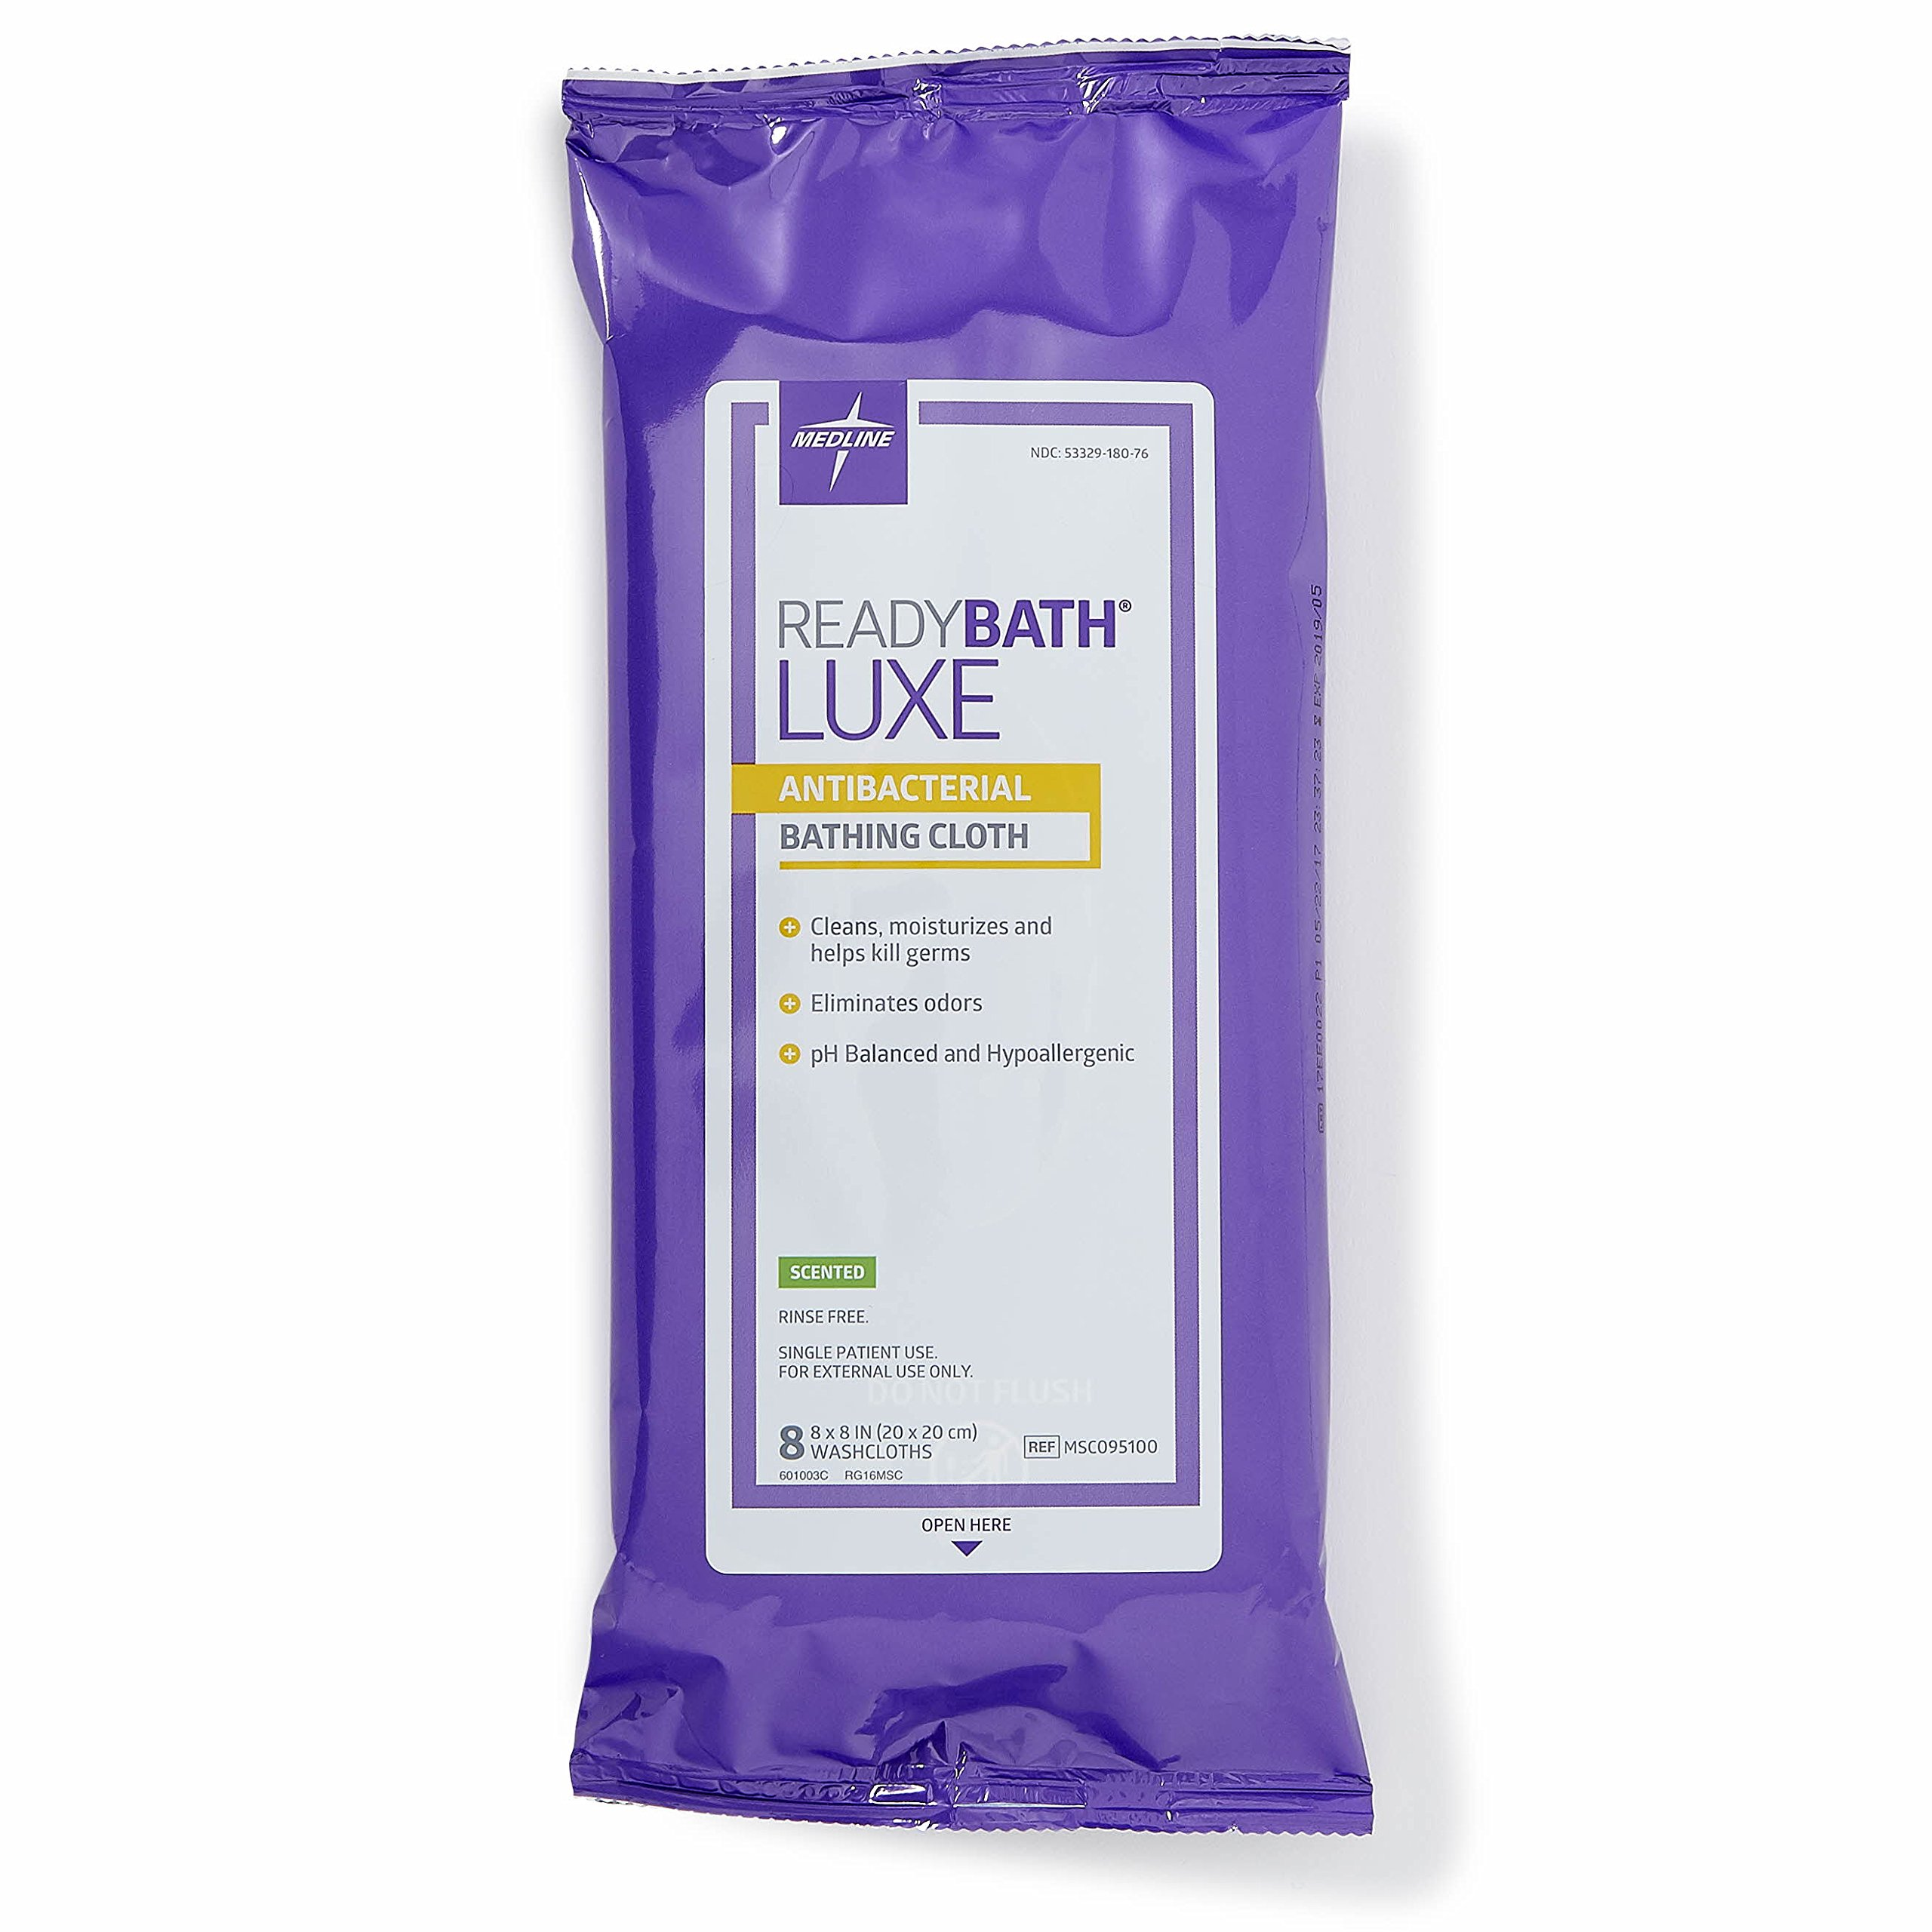 Medline ReadyBath LUXE Antibacterial Body Cleansing Cloth Wipes, Scented, Extra Thick Wipes (8 Count Pack, 24 Packs)